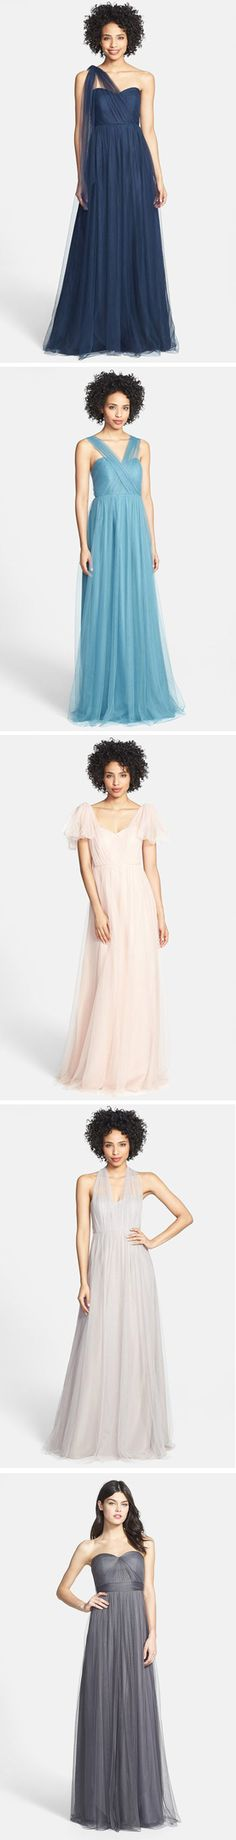 Jenny Yoo 'Annabelle'  convertible bridesmaid dress, over 18 different ways to tie